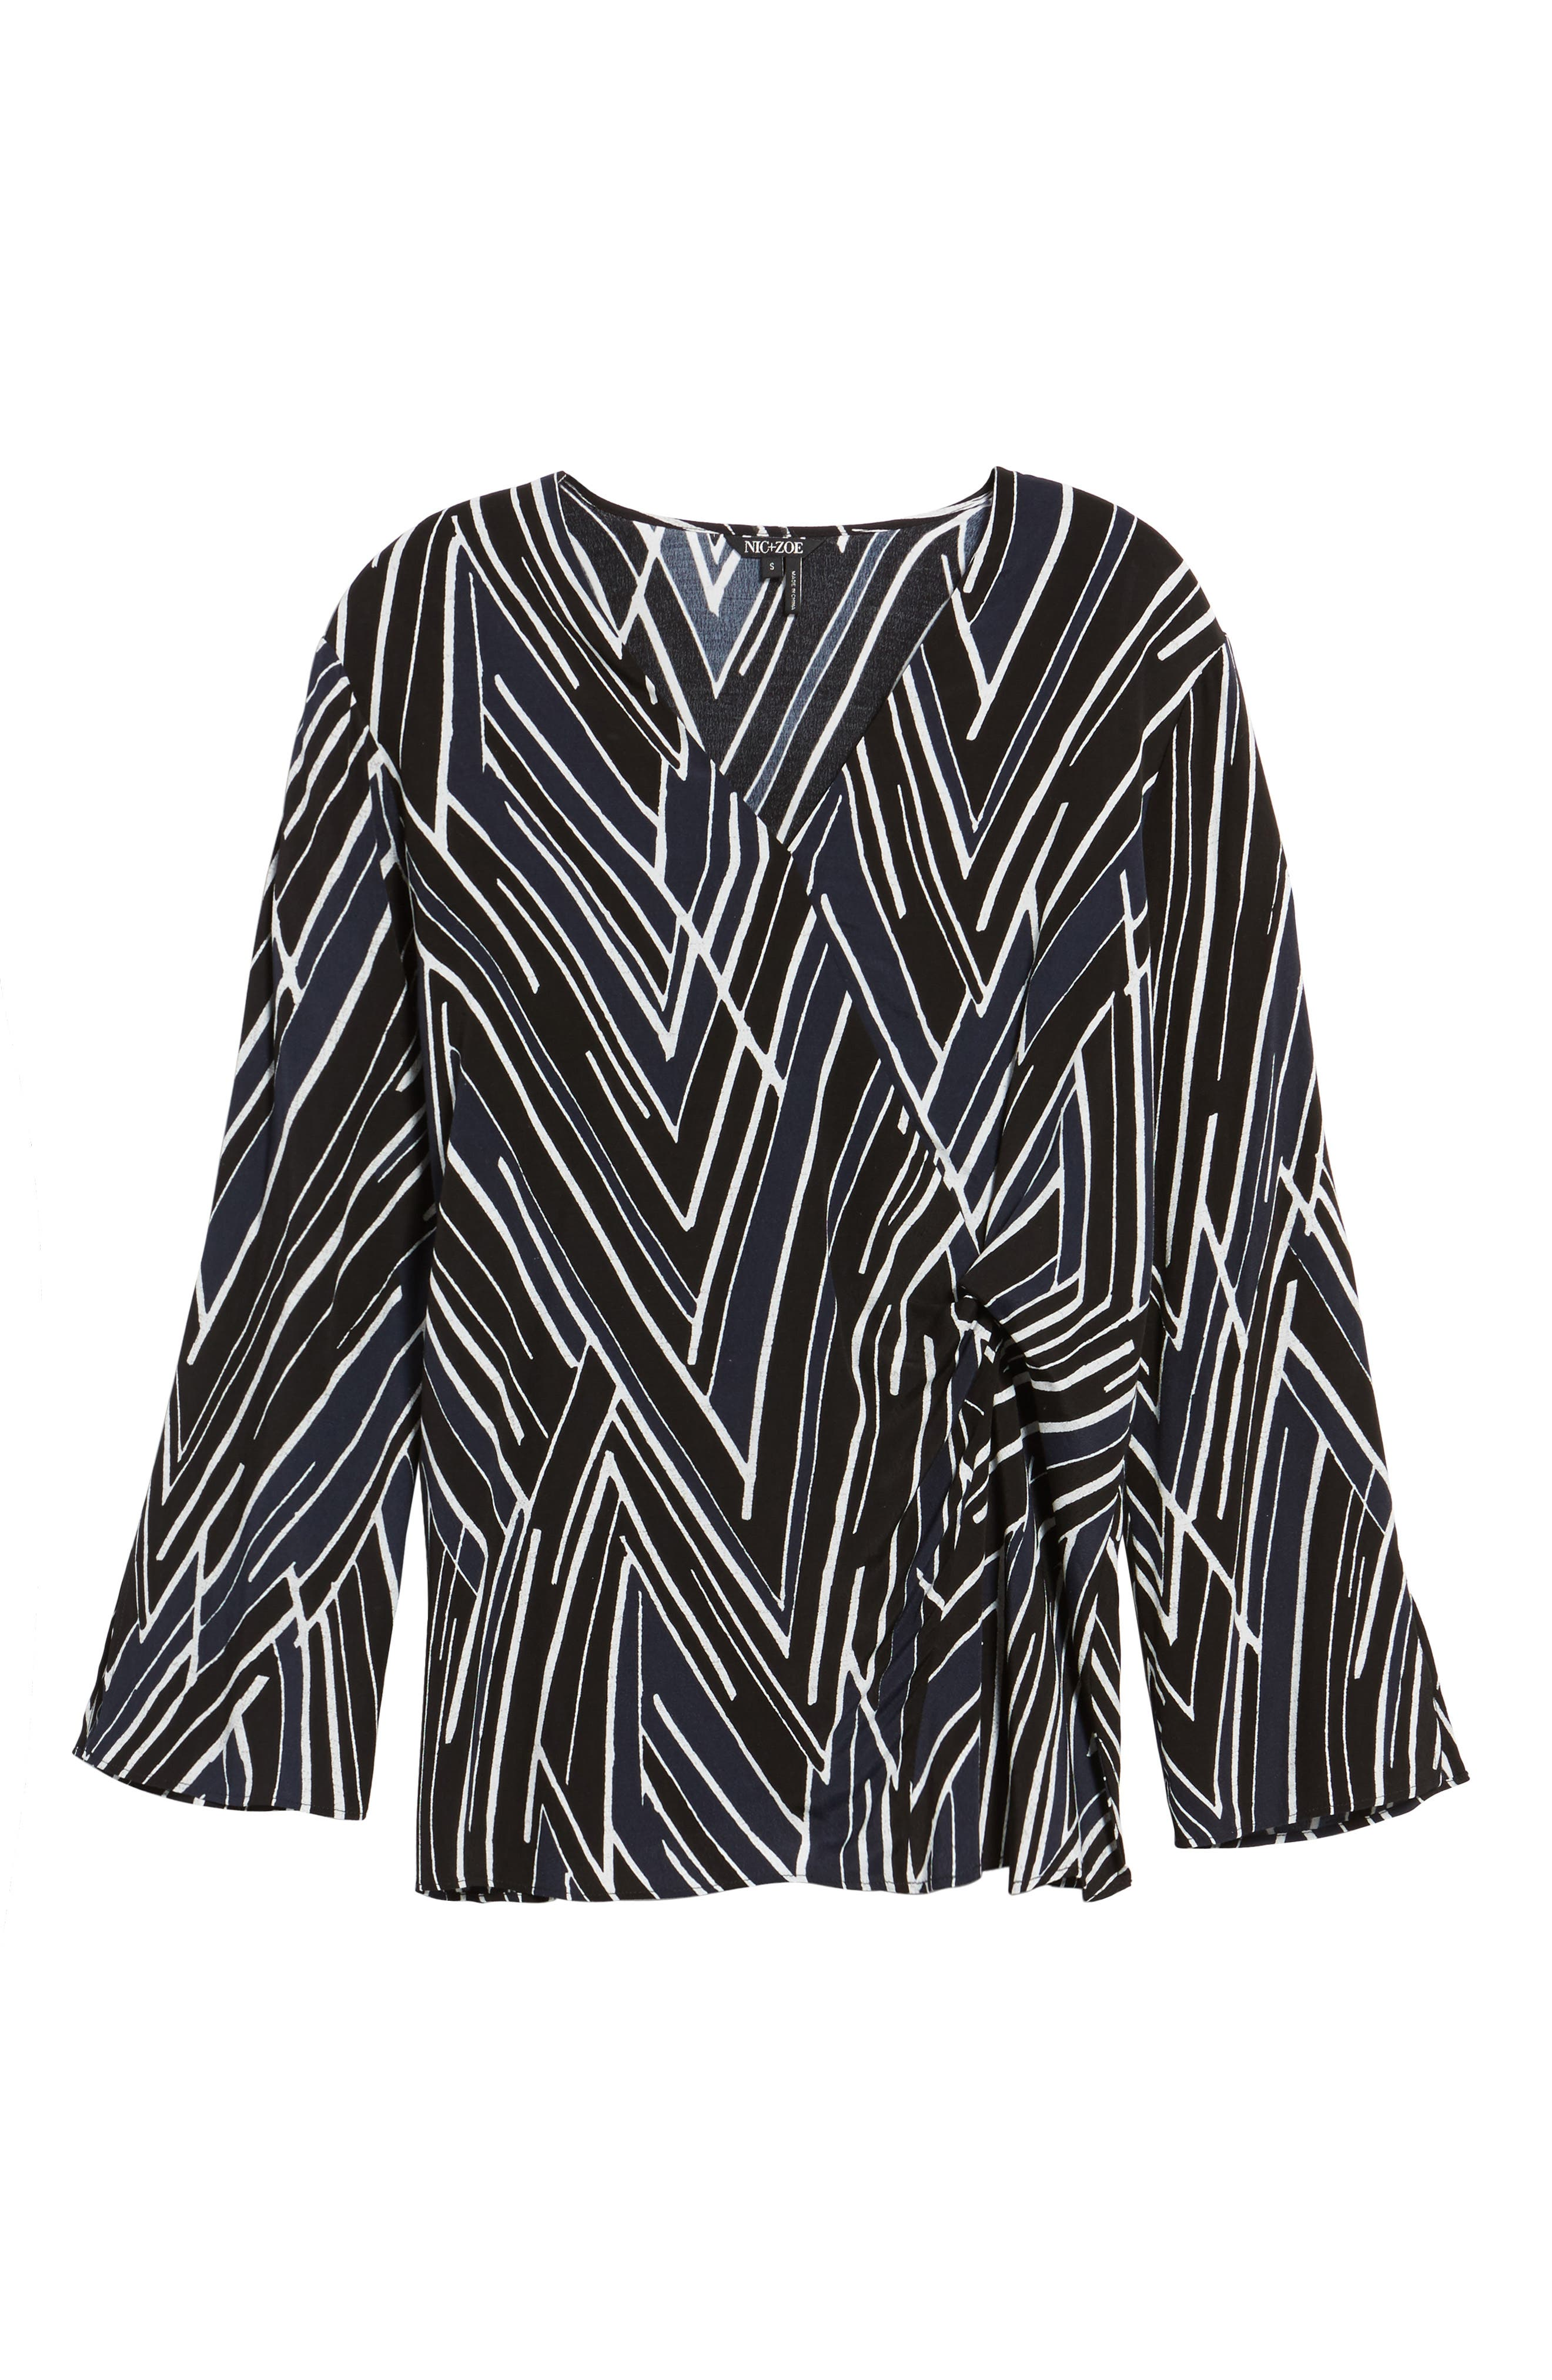 Bells and Whistles Top,                             Alternate thumbnail 6, color,                             Black Multi